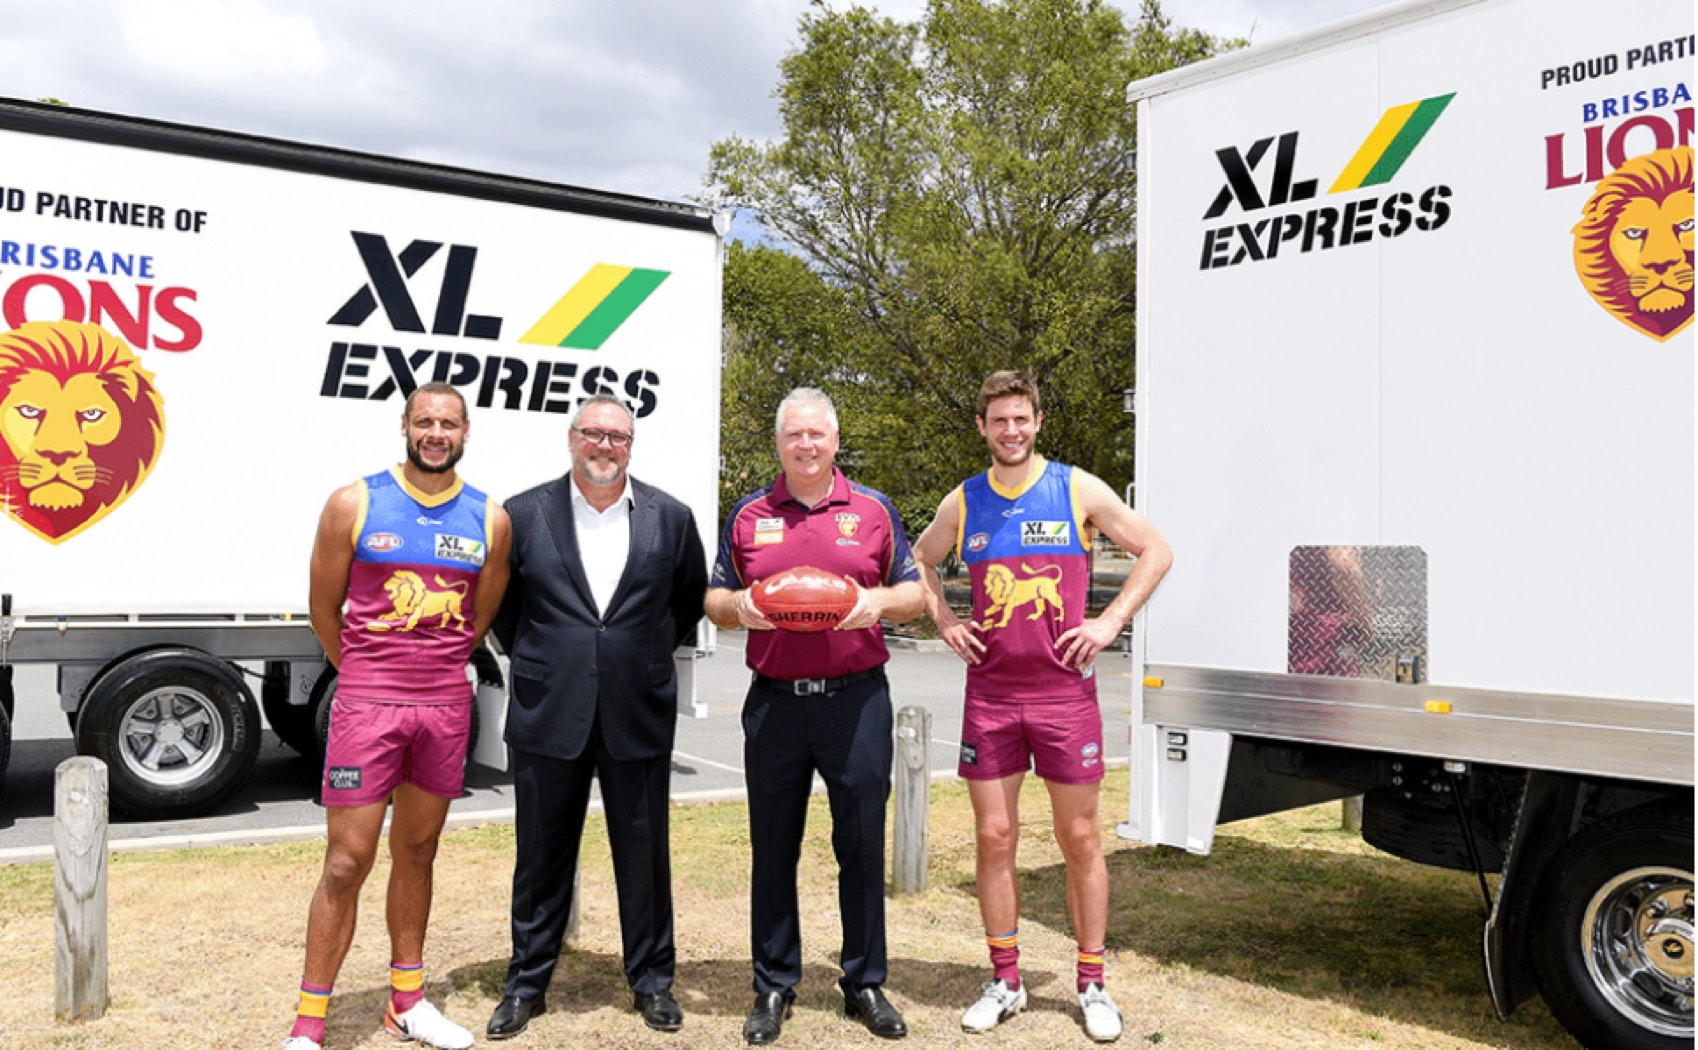 Brisbane Lions AFL football players with XL Express sponsorship team